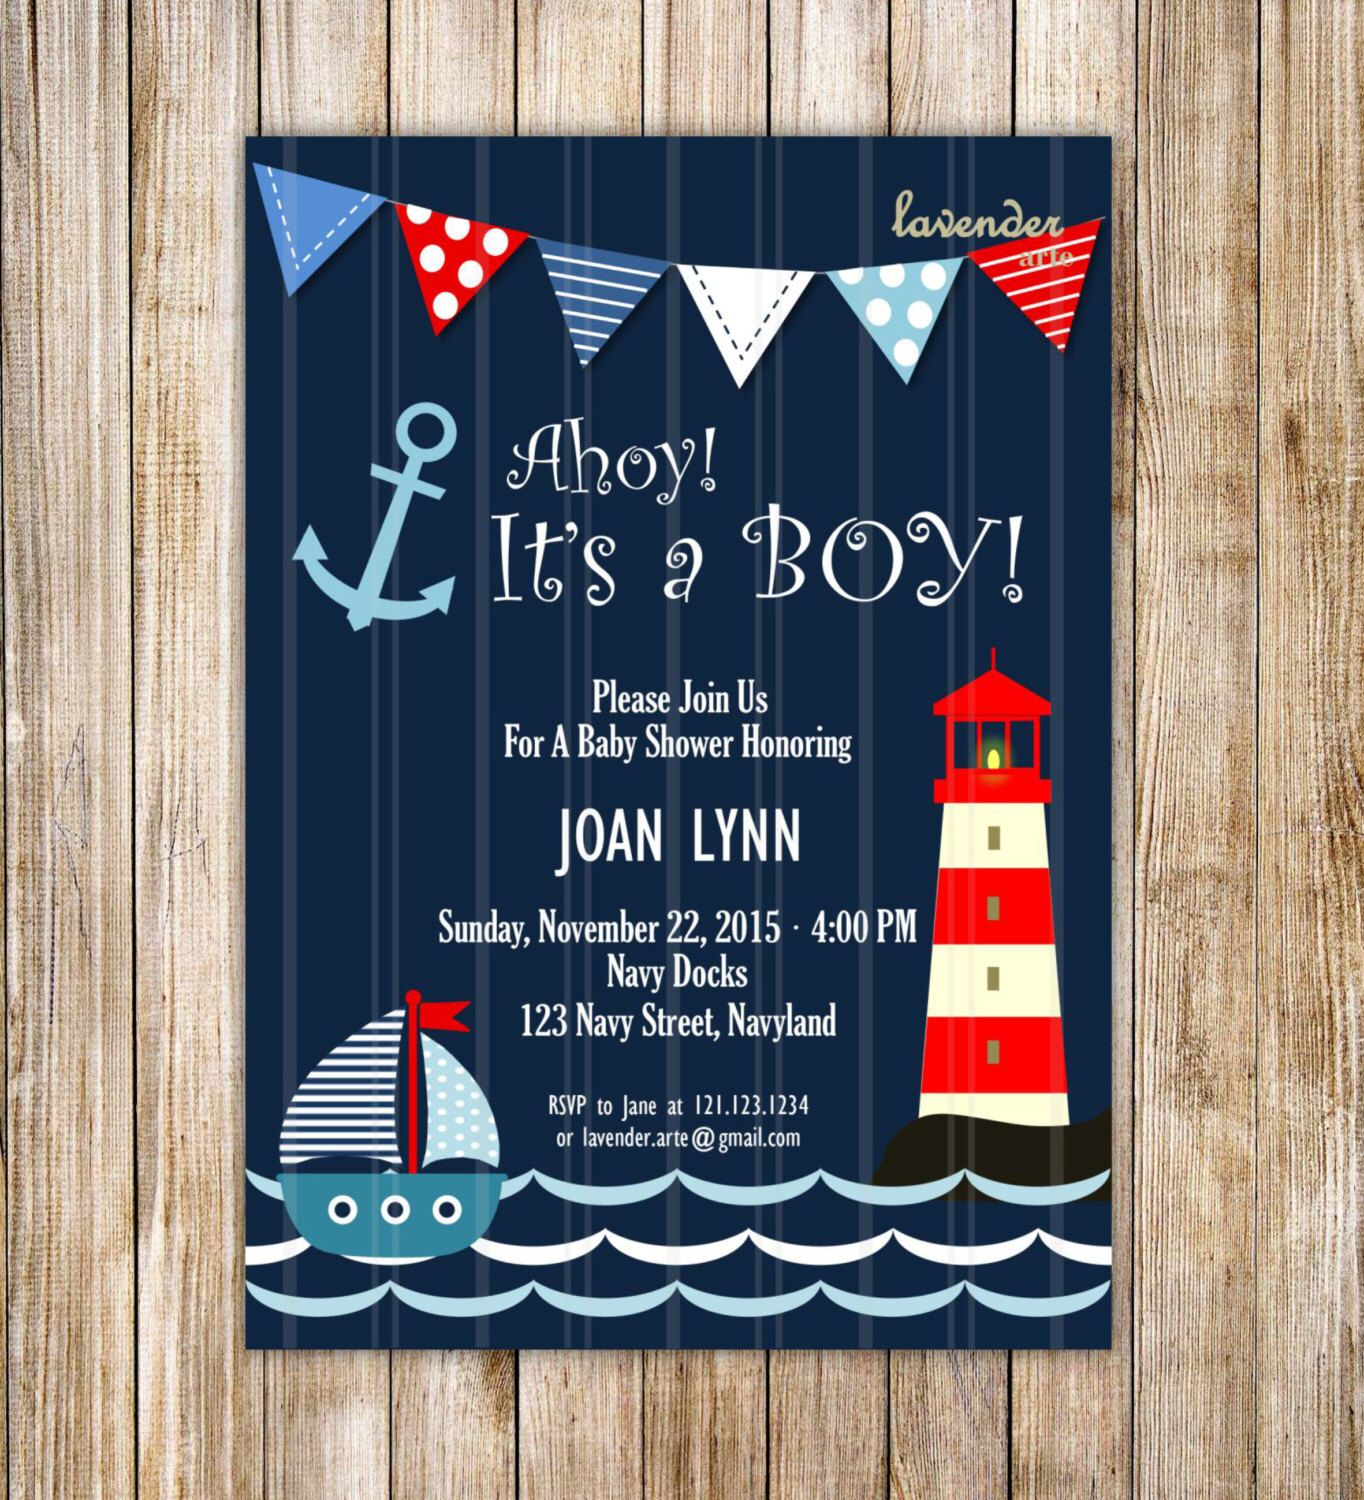 Chevron Nautical Ba Shower Or Birthday Invite Tipsy in dimensions 1500 X  1500 Nautical Themed Baby Shower Invitation Templates - Discovering the  right